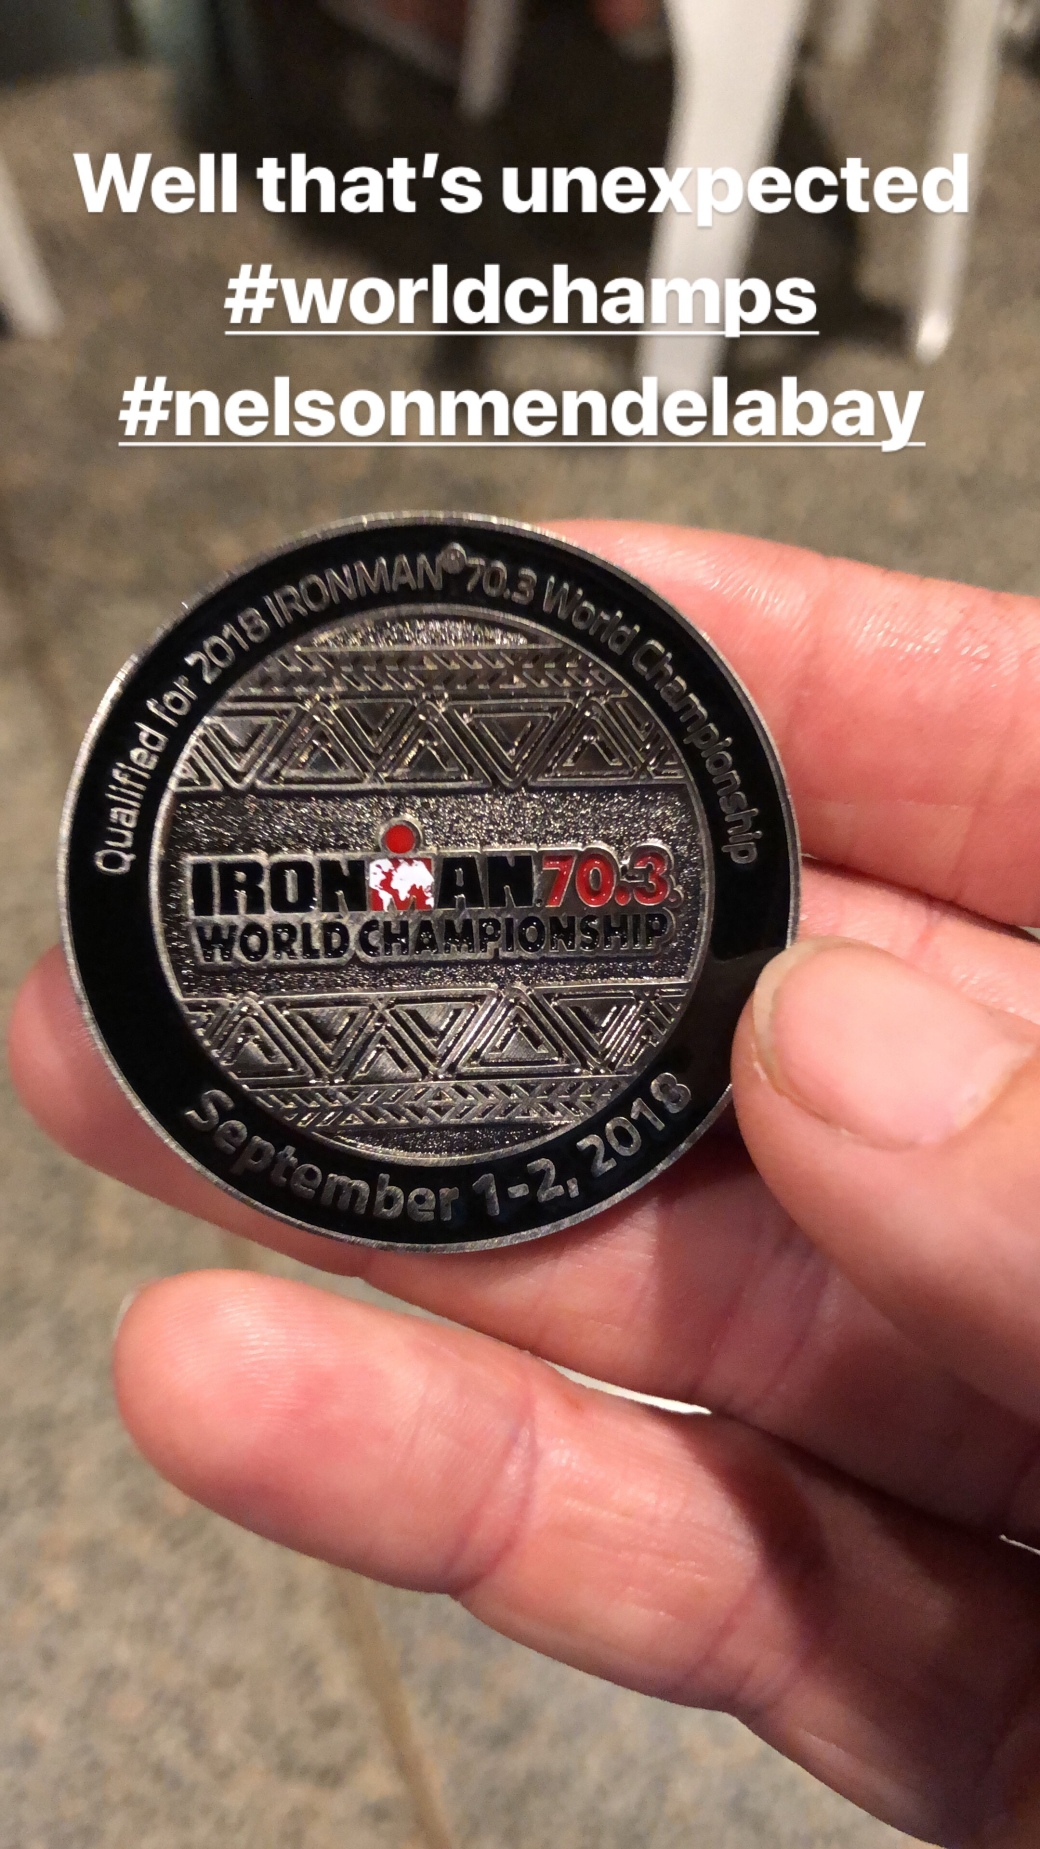 Ironman 70.3 World Championship Qualifier Medal